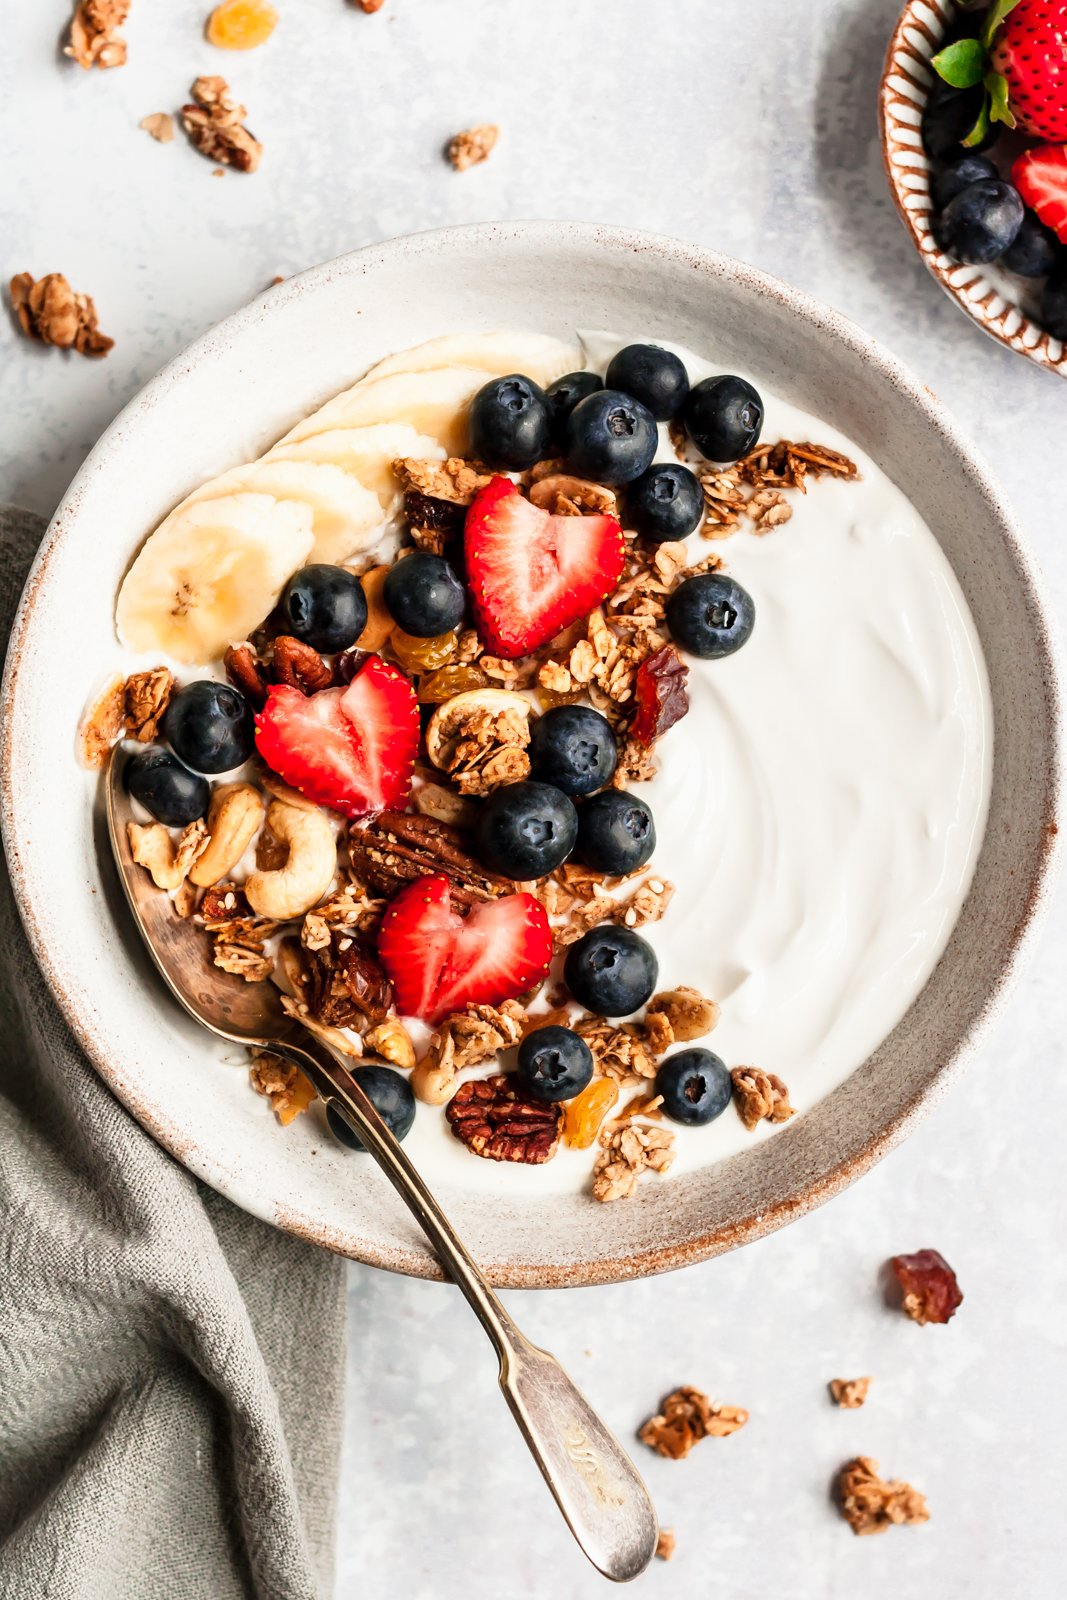 yogurt in a bowl topped with healthy granola, berries and bananas